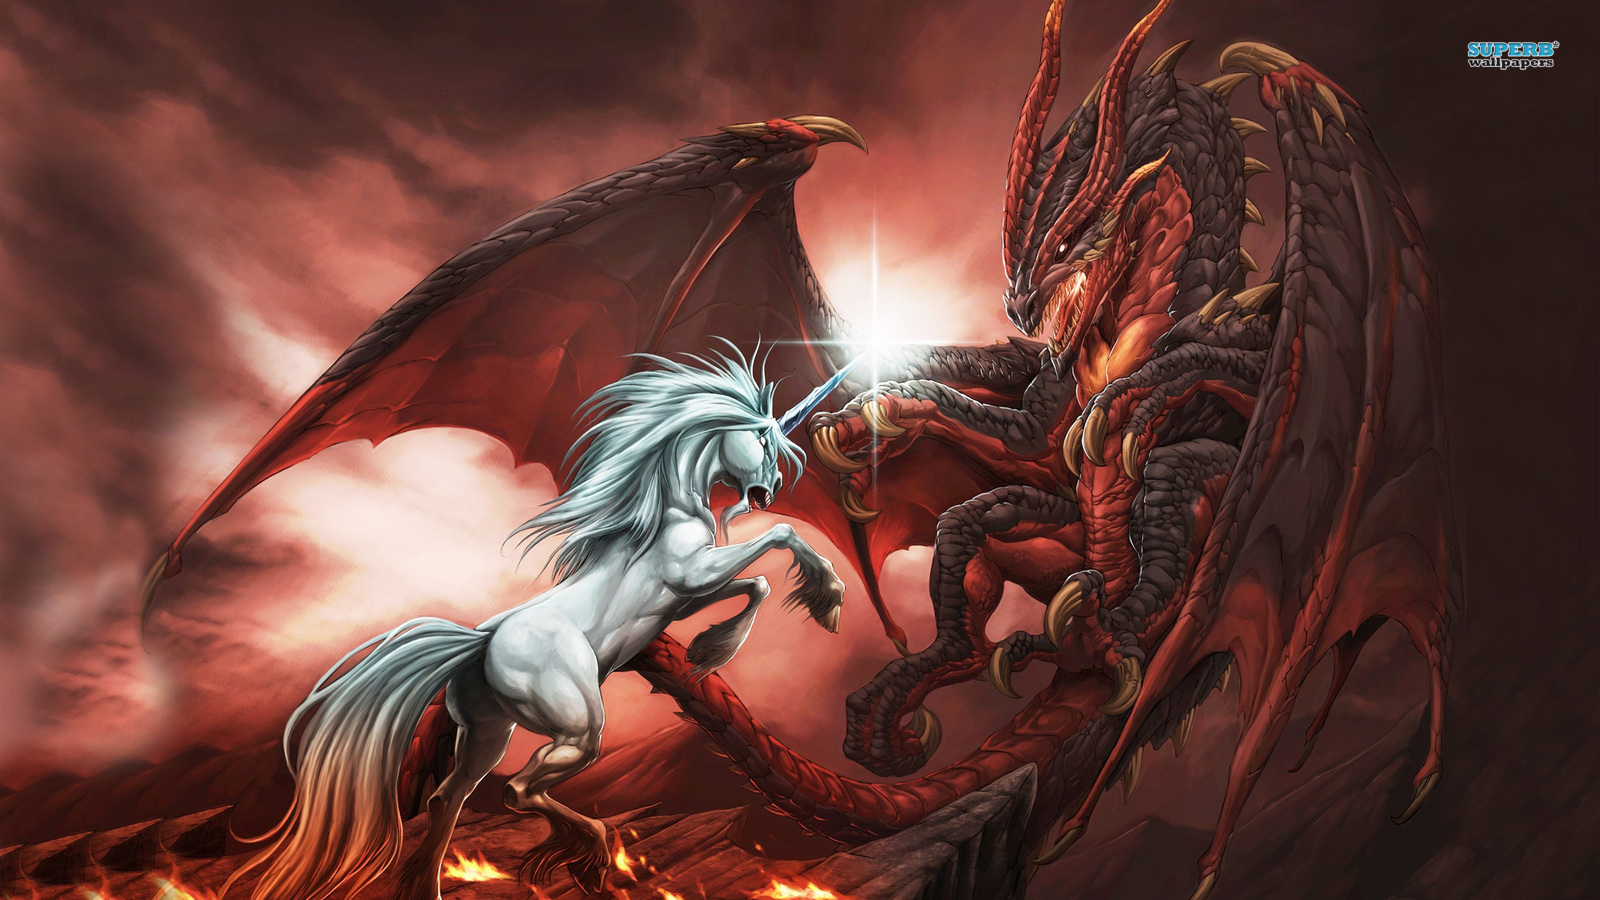 Dragons images Unicorn vs Dragon HD wallpaper and background photos